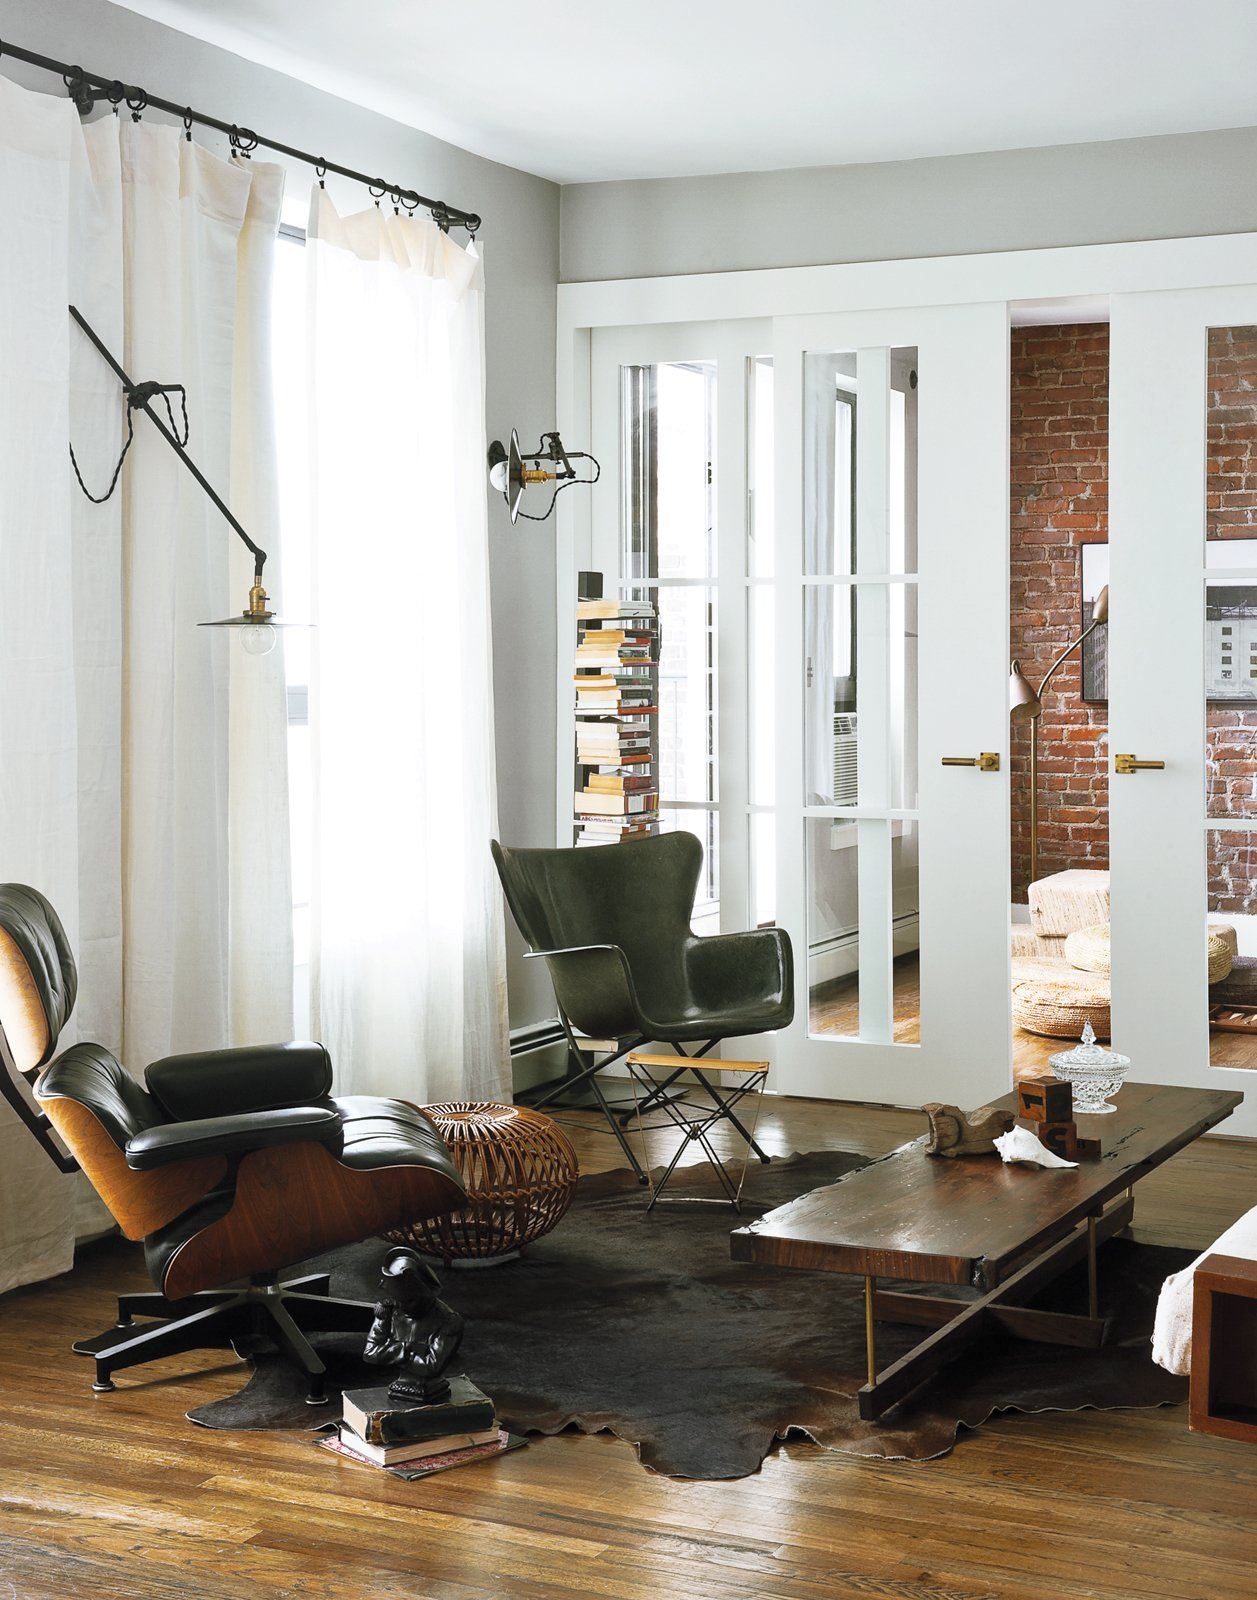 Eames lounge chair in room - In The Living Room An Eames Lounge Chair Is Matched With A Richard Conover